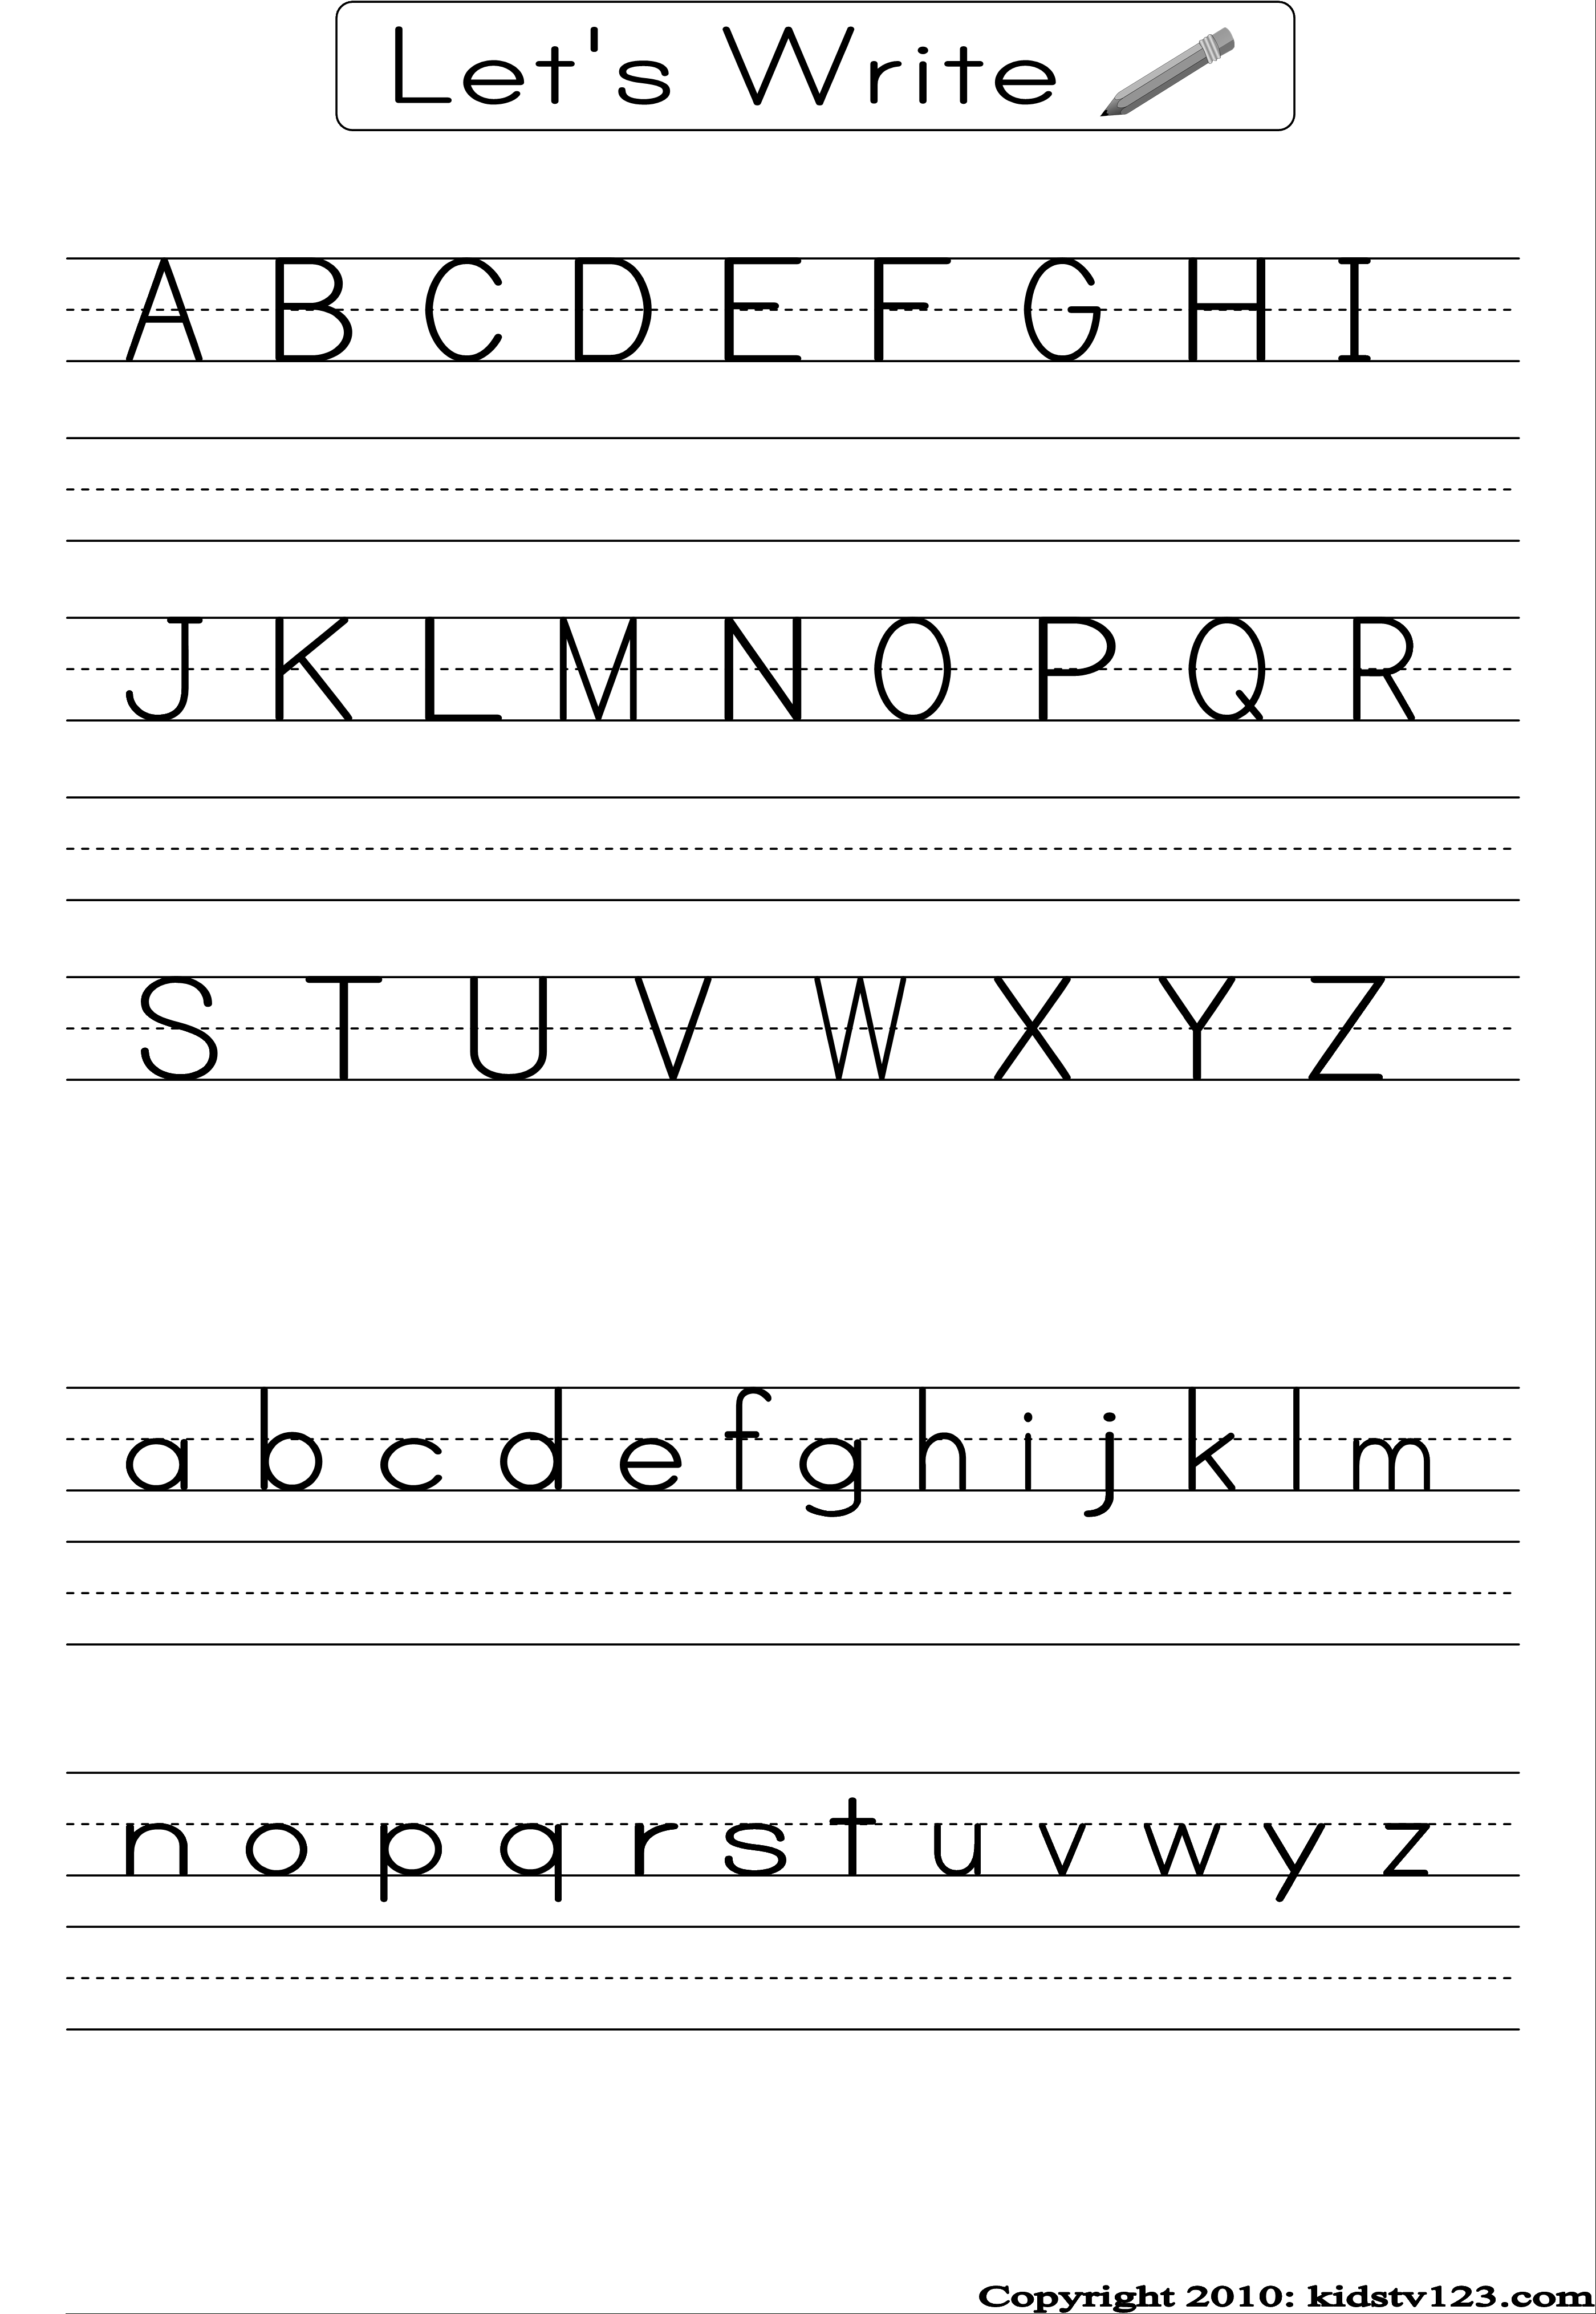 Free Printable Alphabet Worksheets, Preschool Writing And Pattern - Free Printable Alphabet Pages